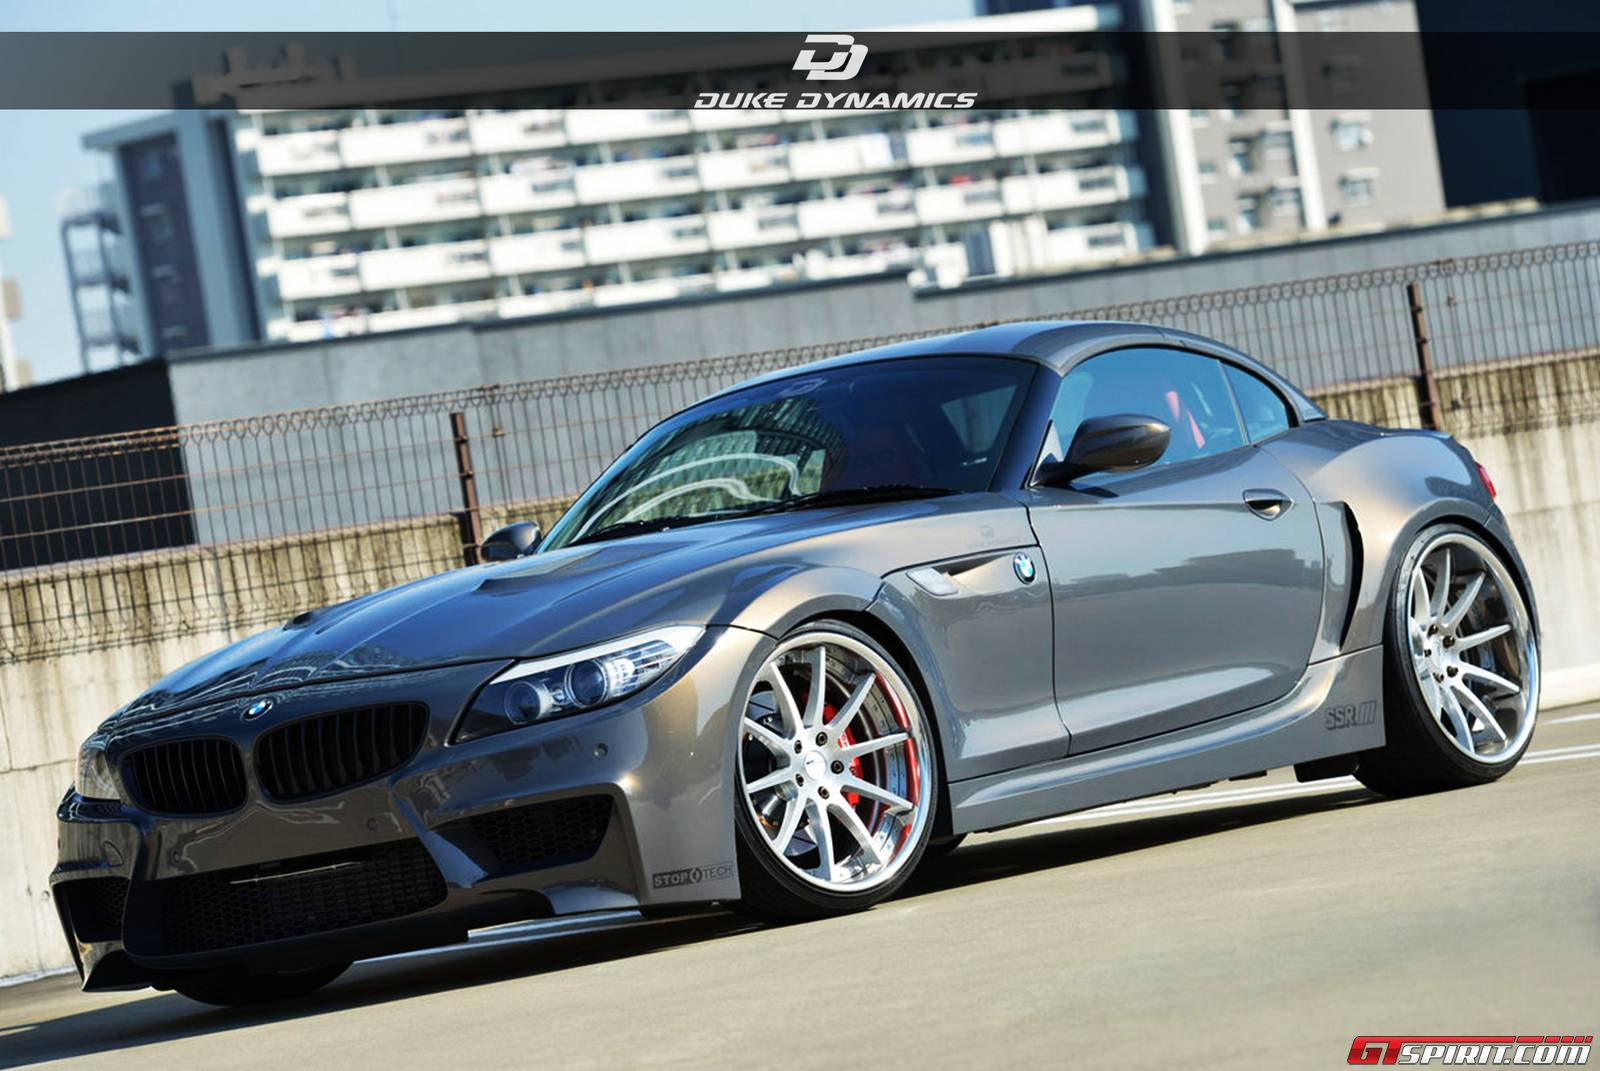 official bmw z4 widebody by duke dynamics gtspirit. Black Bedroom Furniture Sets. Home Design Ideas